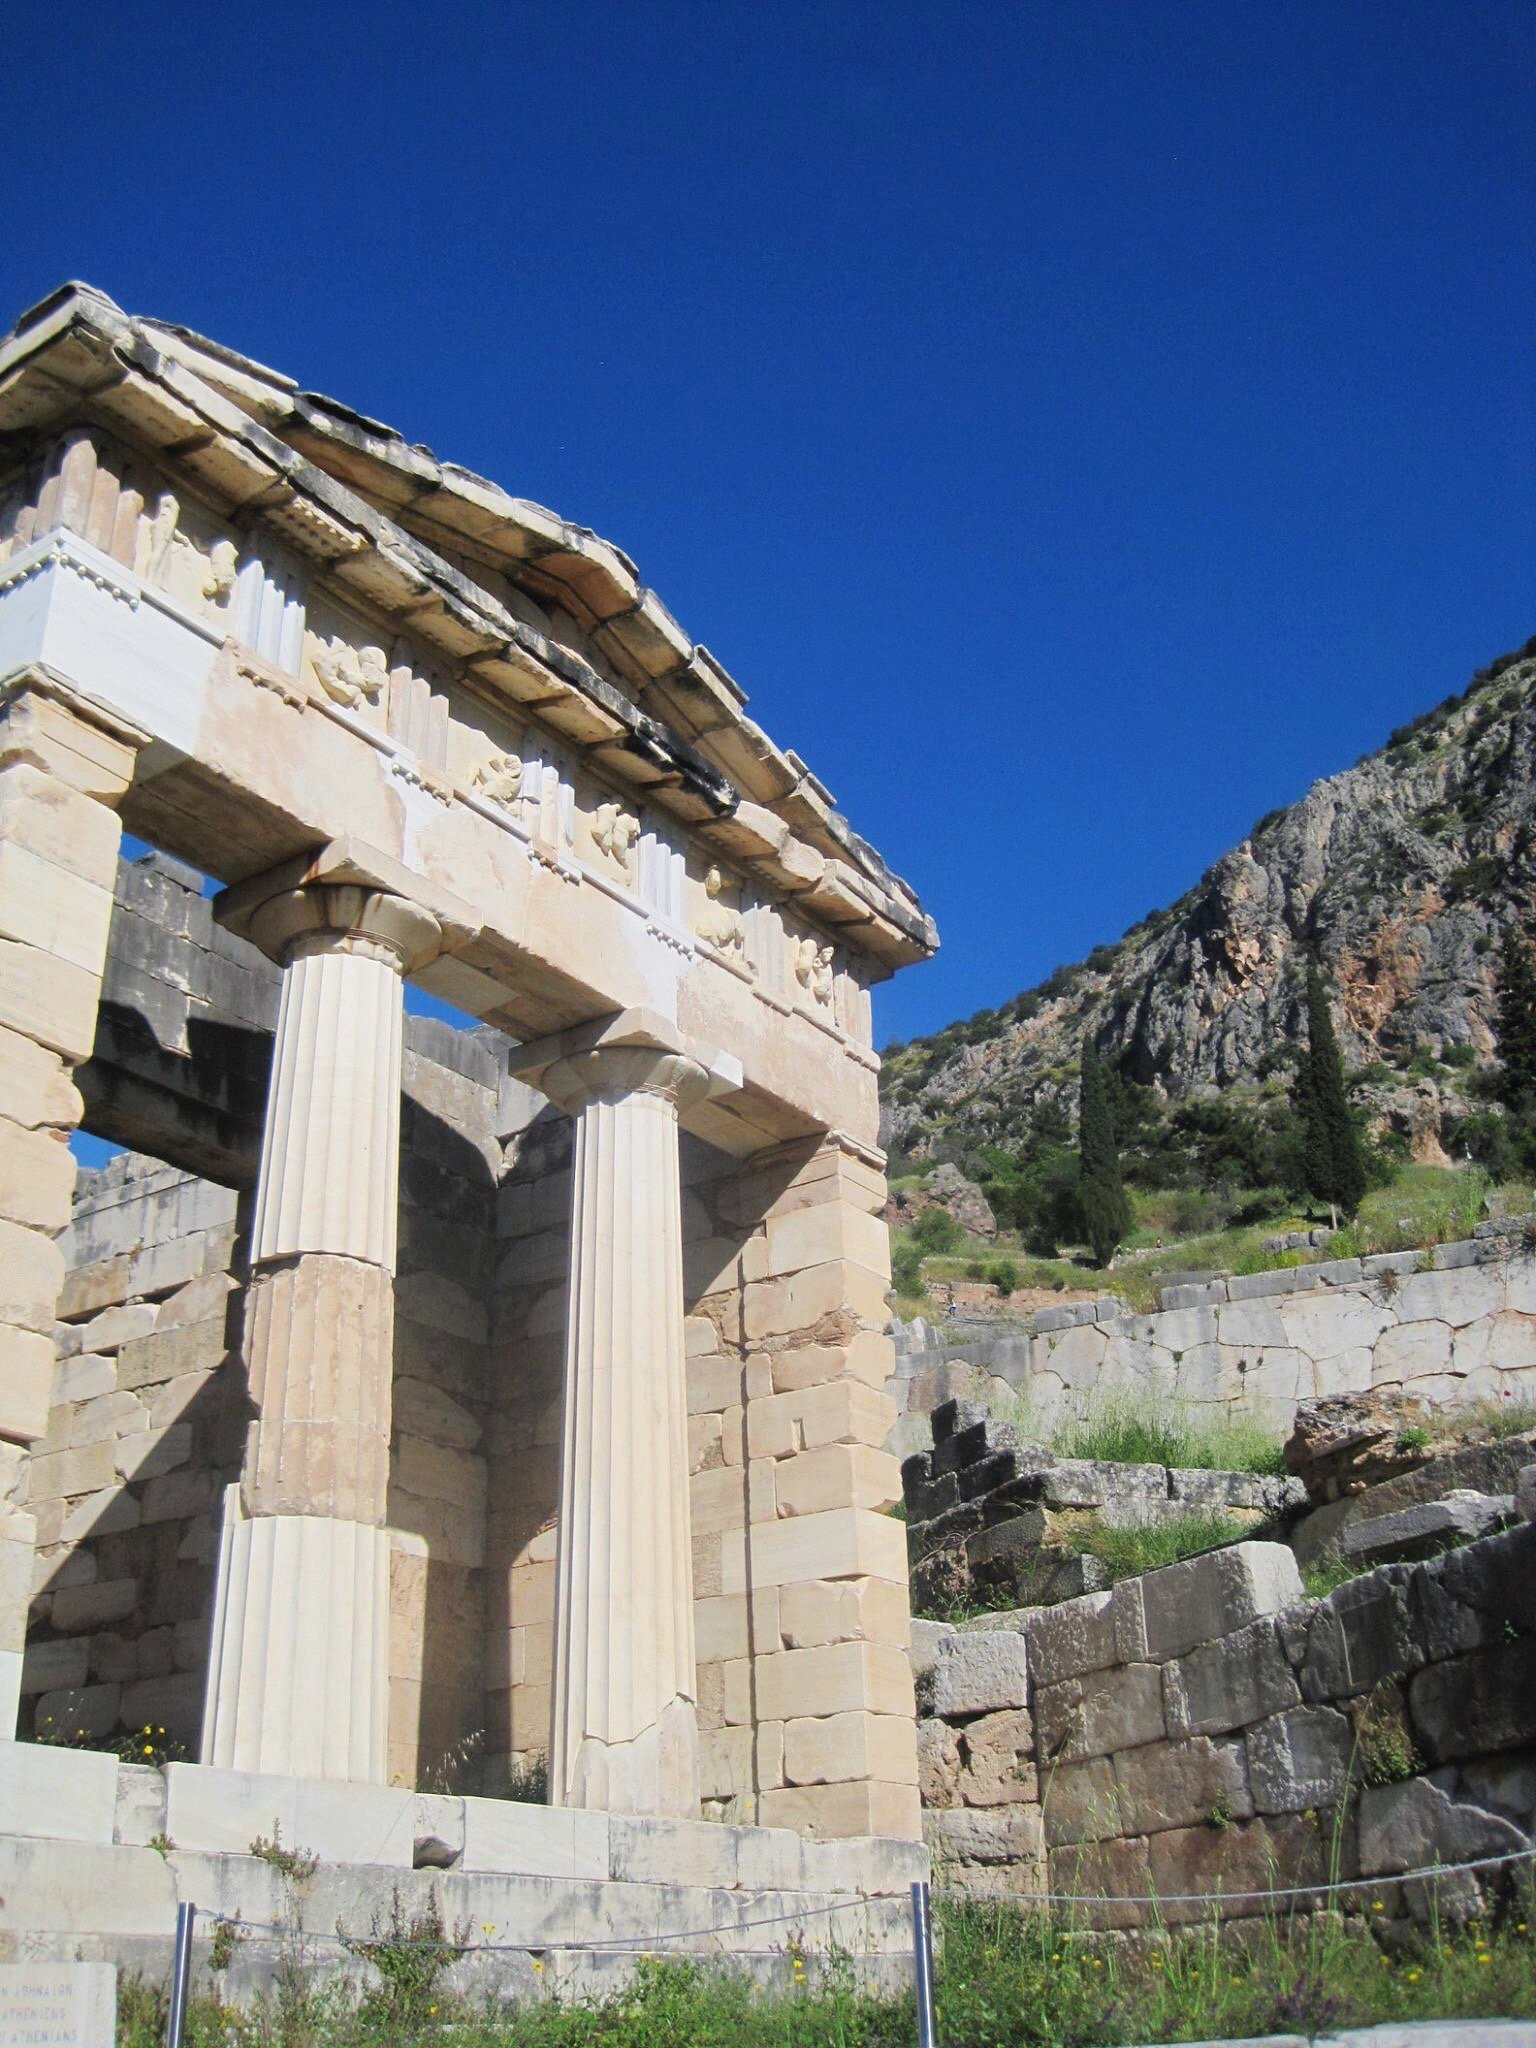 The Athenian Treasury   Delphi: The Bellybutton of the Ancient World   www.herlifeinruins.com